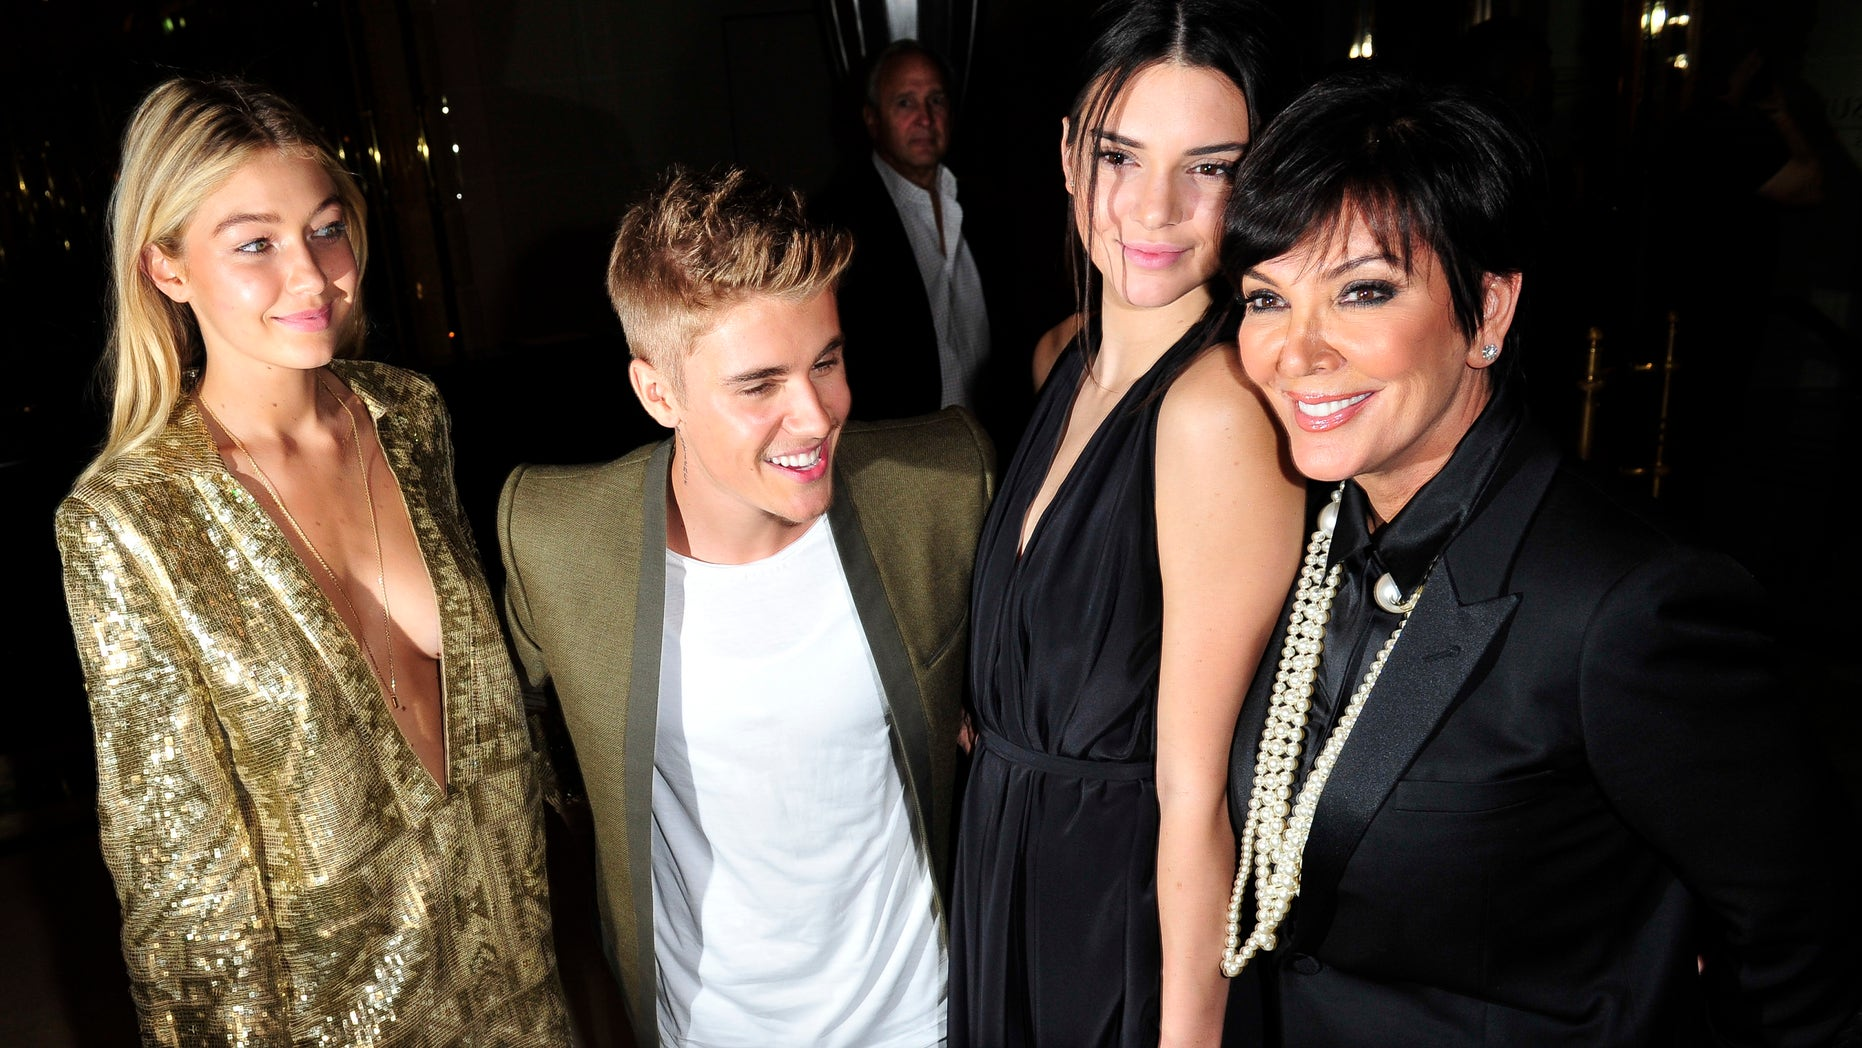 Gigi Hadid, Justin Bieber, Kendall Jenner, and Kris Jenner in Paris, Tuesday, Sept. 30, 2014.